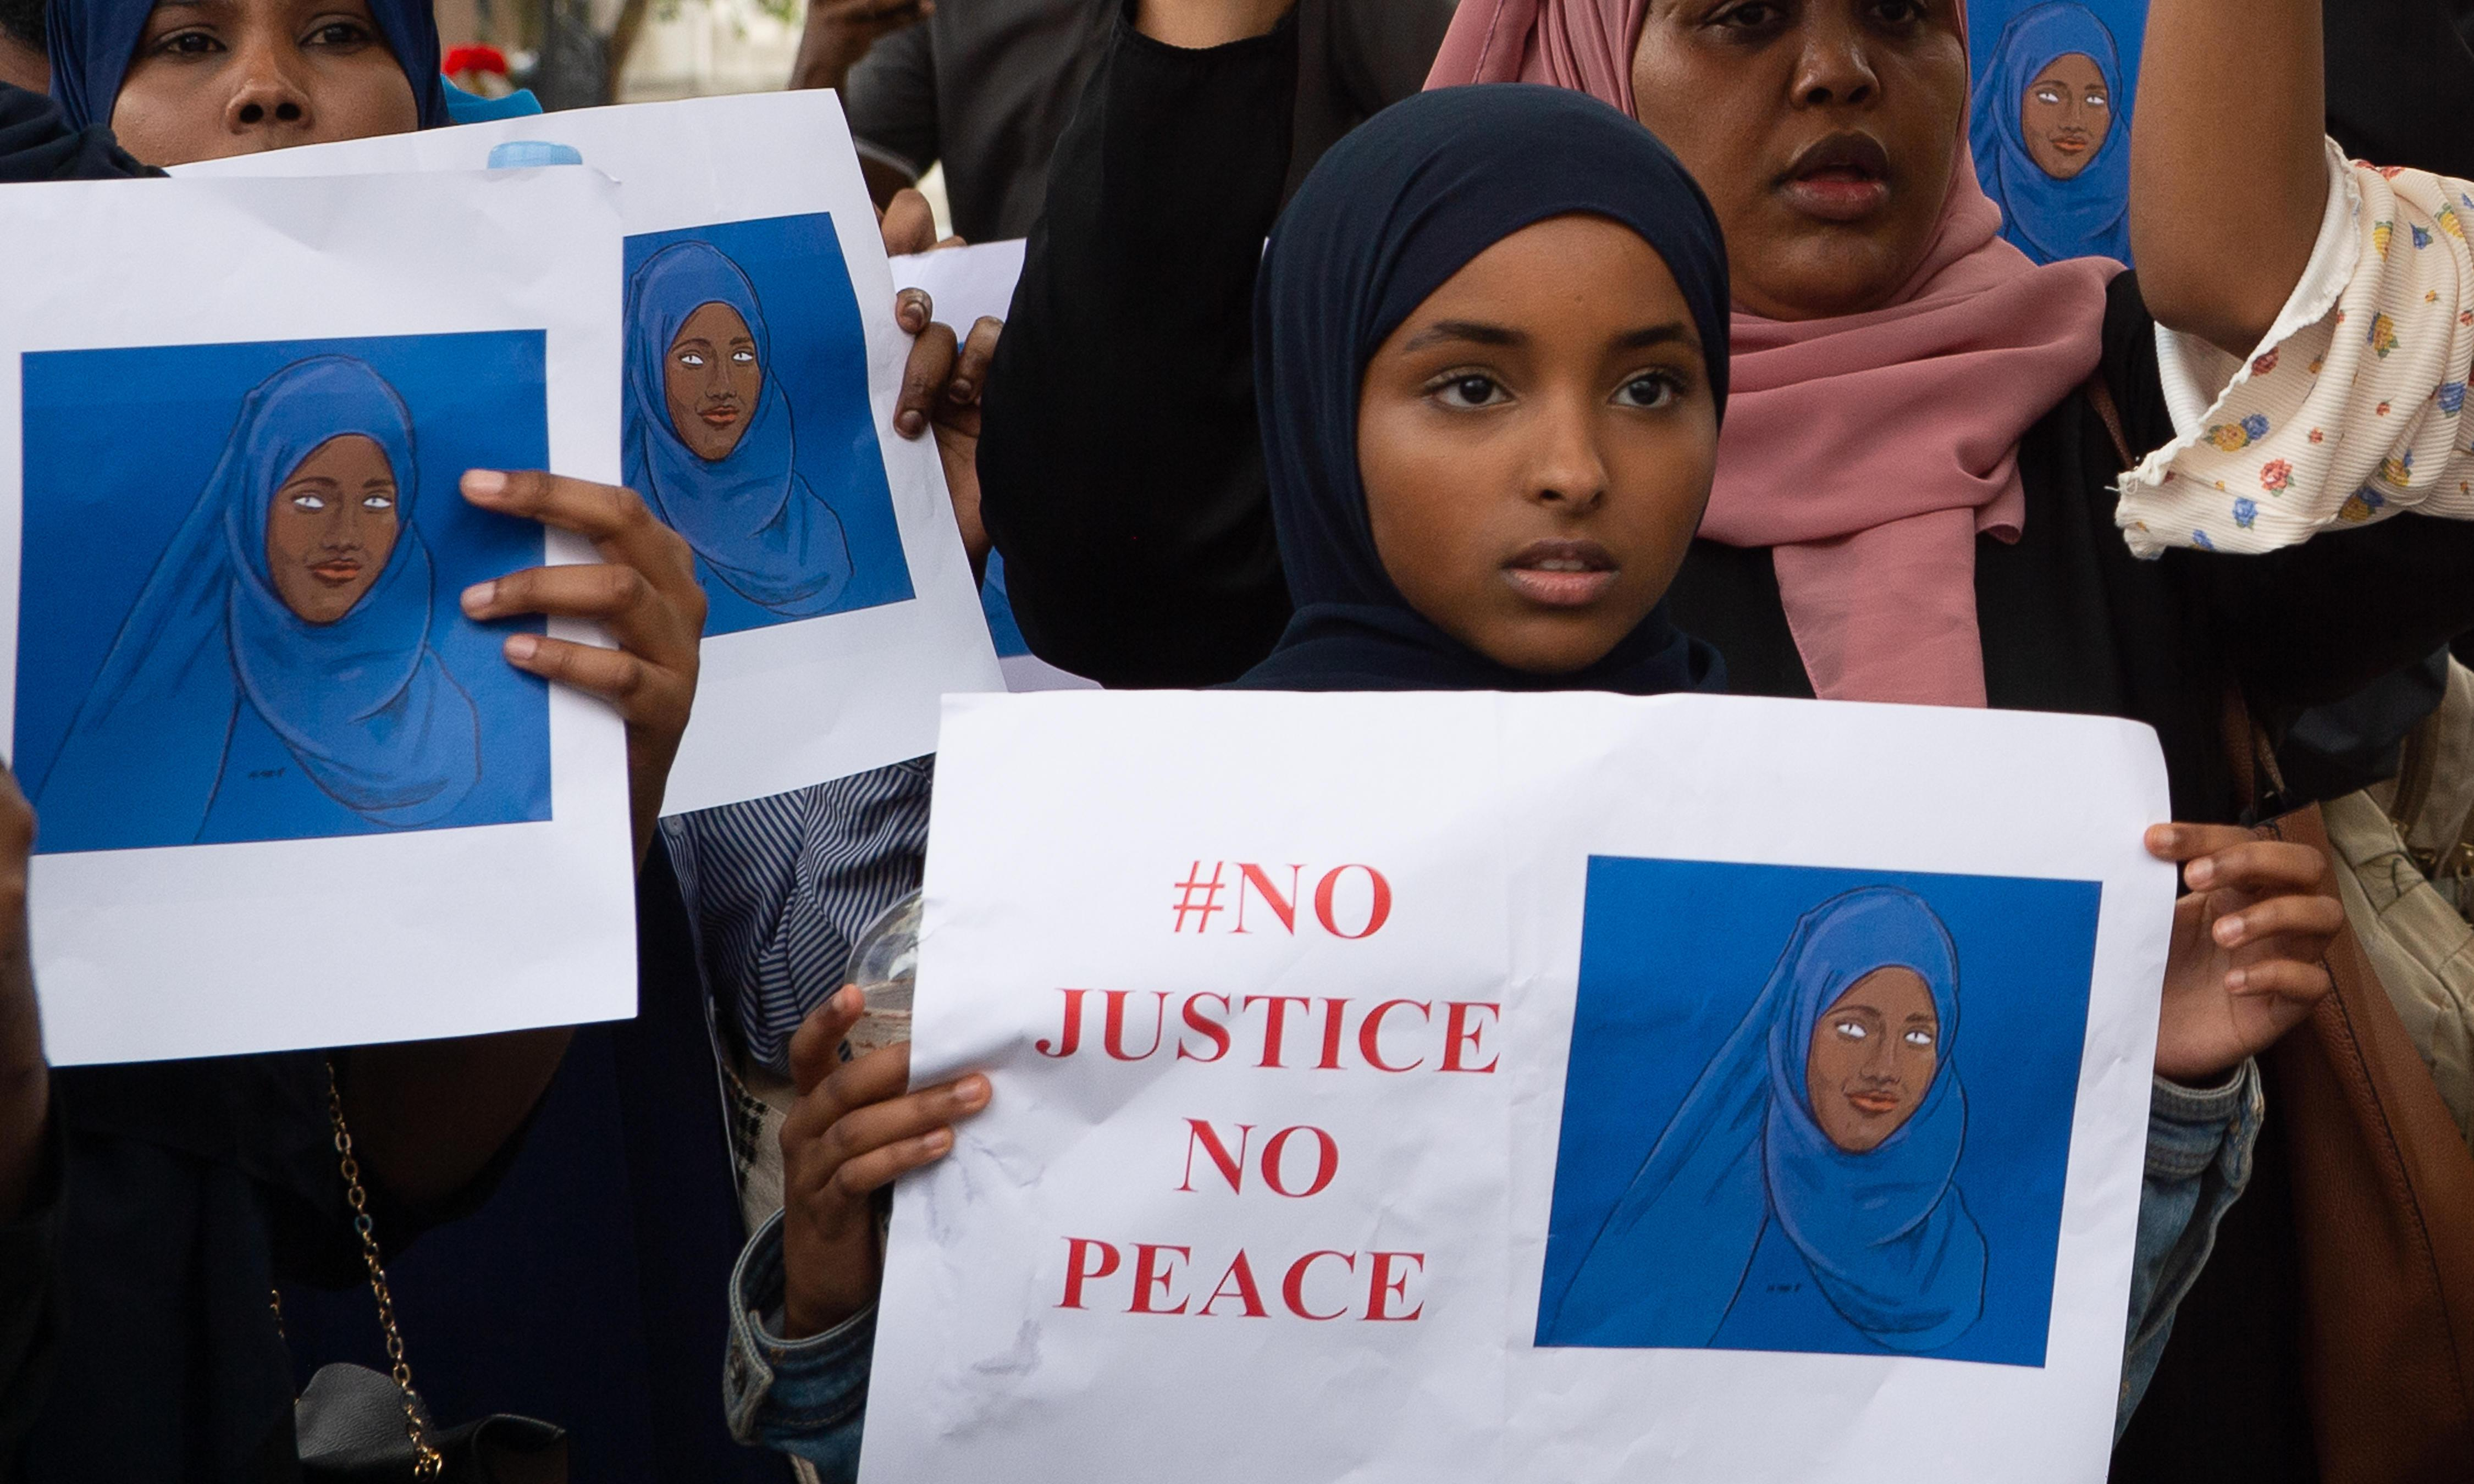 New bullying claims over Somali schoolgirl, 12, drowned in river